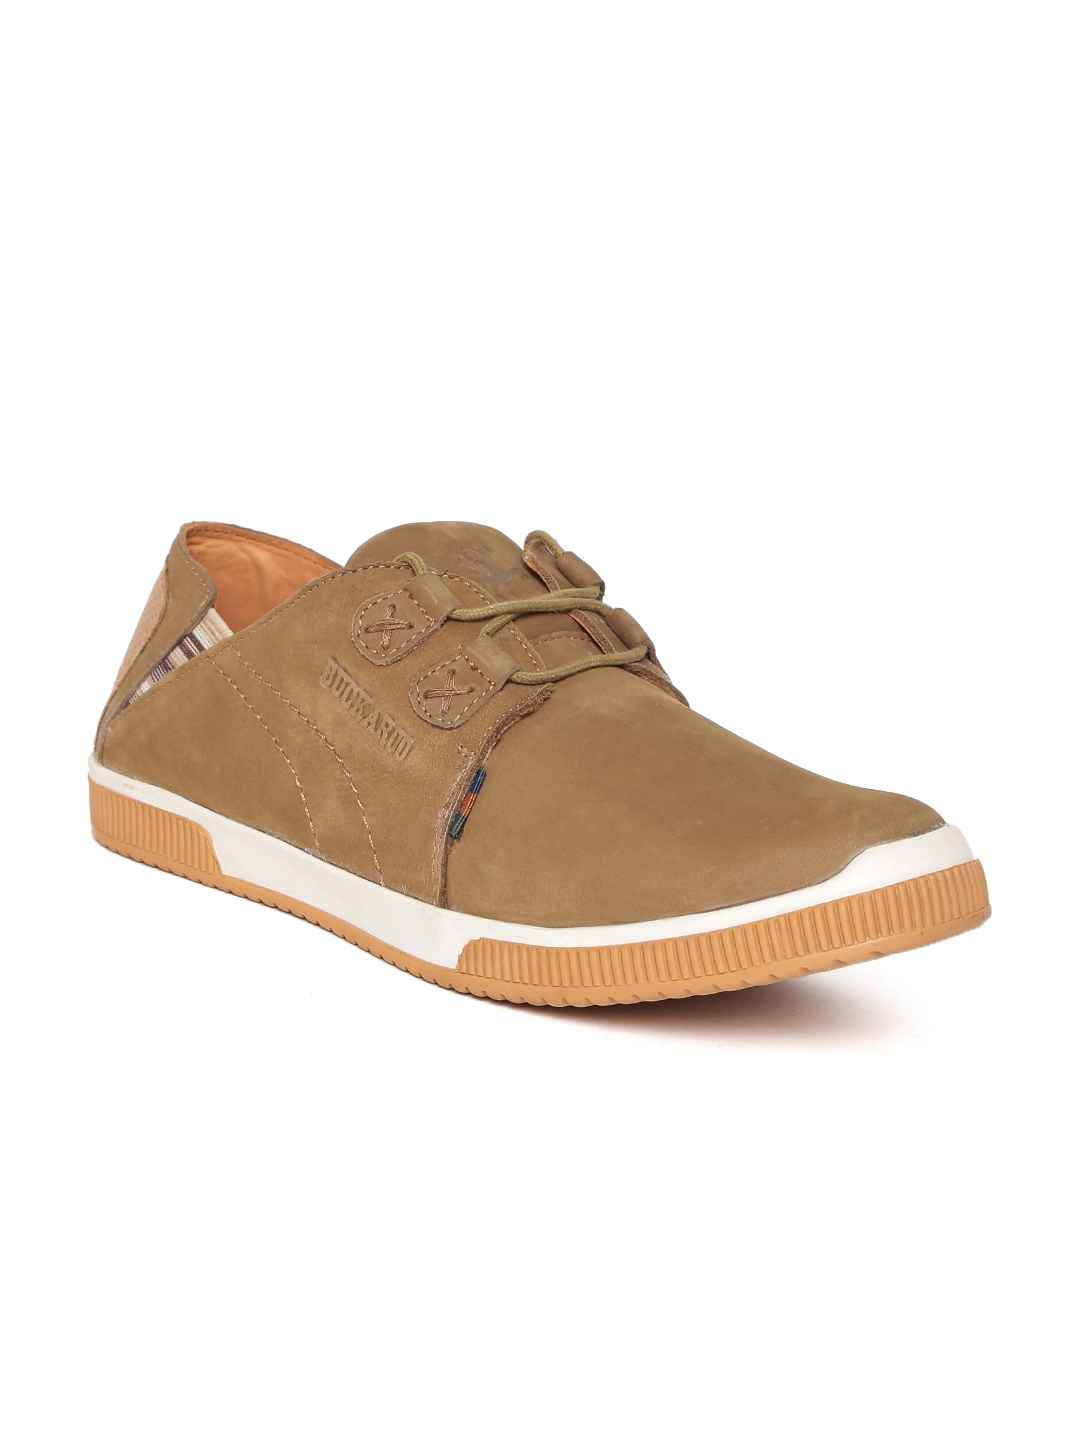 a7c0dbc3f34 Buy Buckaroo Men Brown James Leather Sneakers - Casual Shoes for Men ...